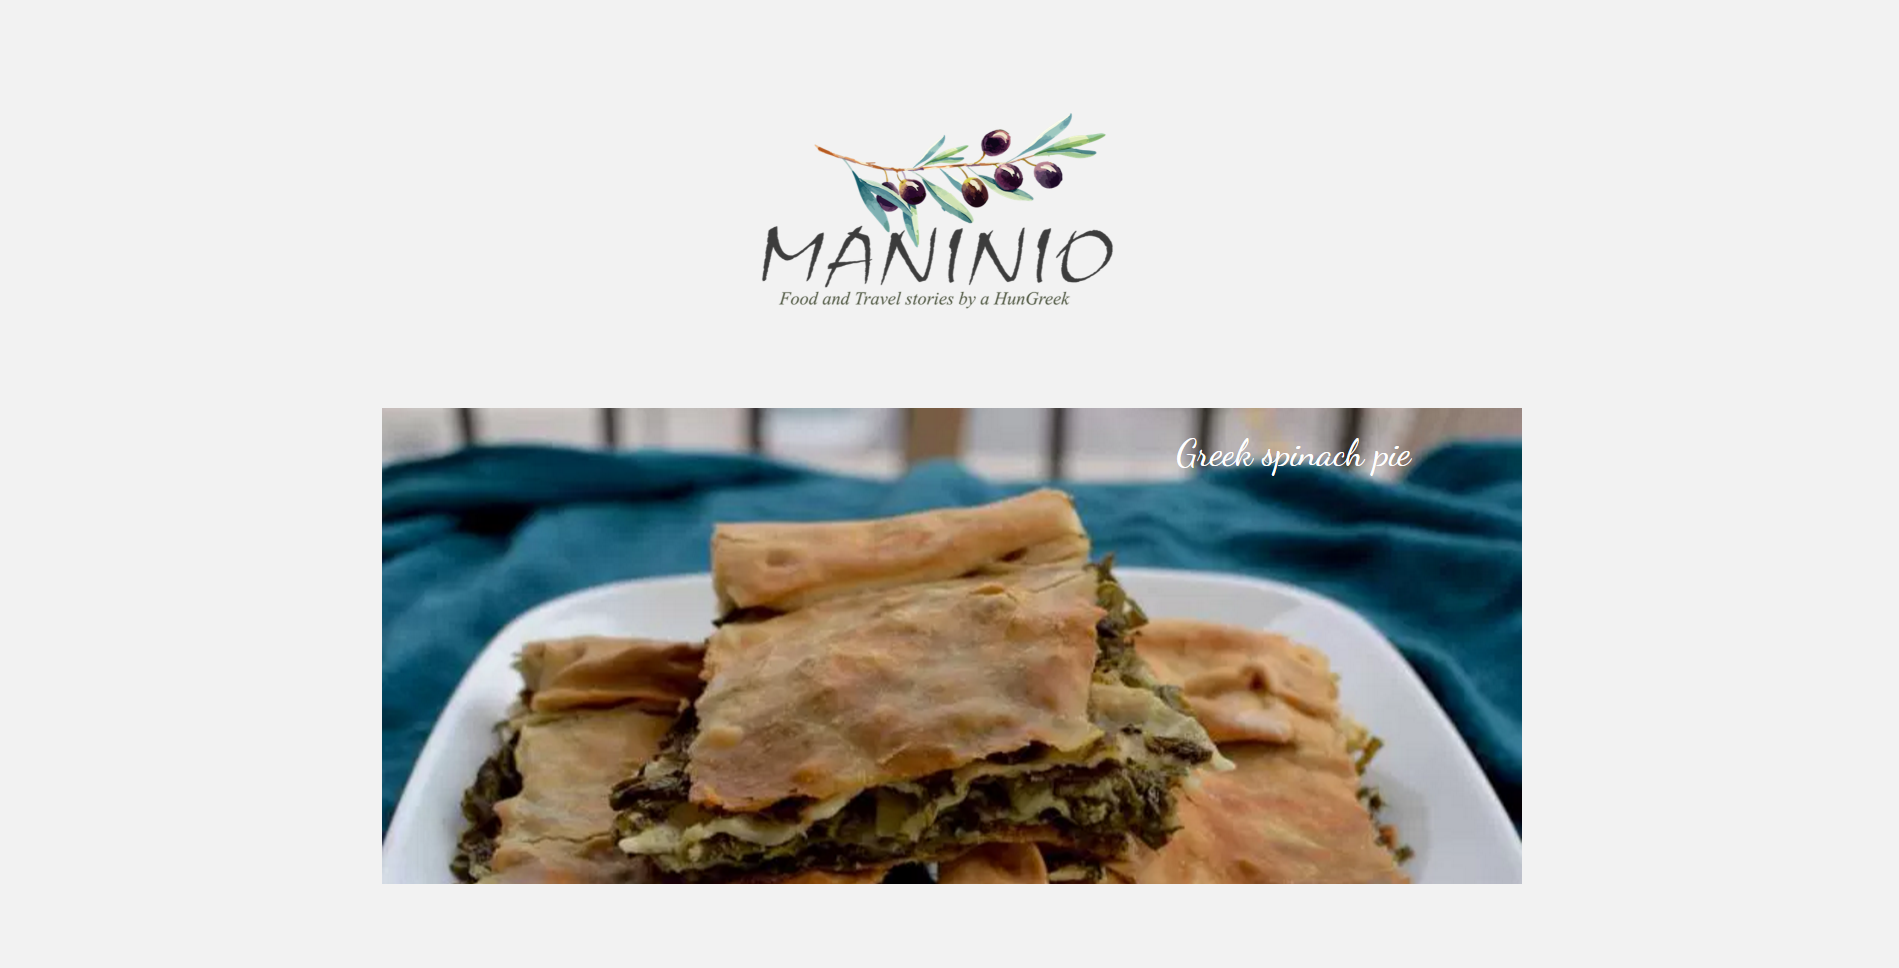 Amazing recipes made by a great Food & Travel Blogger, Pinelopi Kyriazi. www.maninio.com